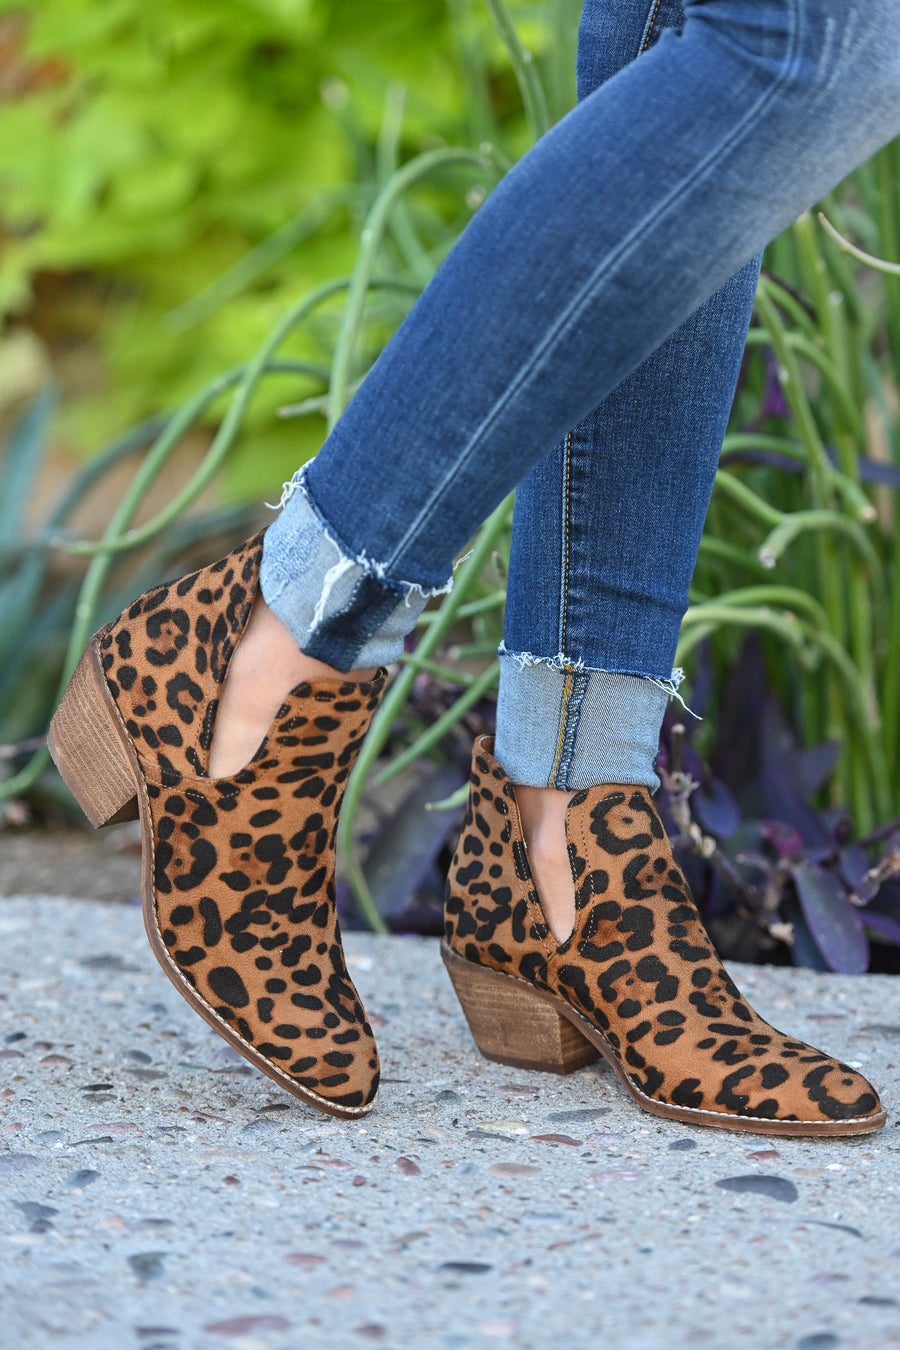 Calling Cupid Booties - Leopard print women's cutout booties, Closet Candy Boutique 1